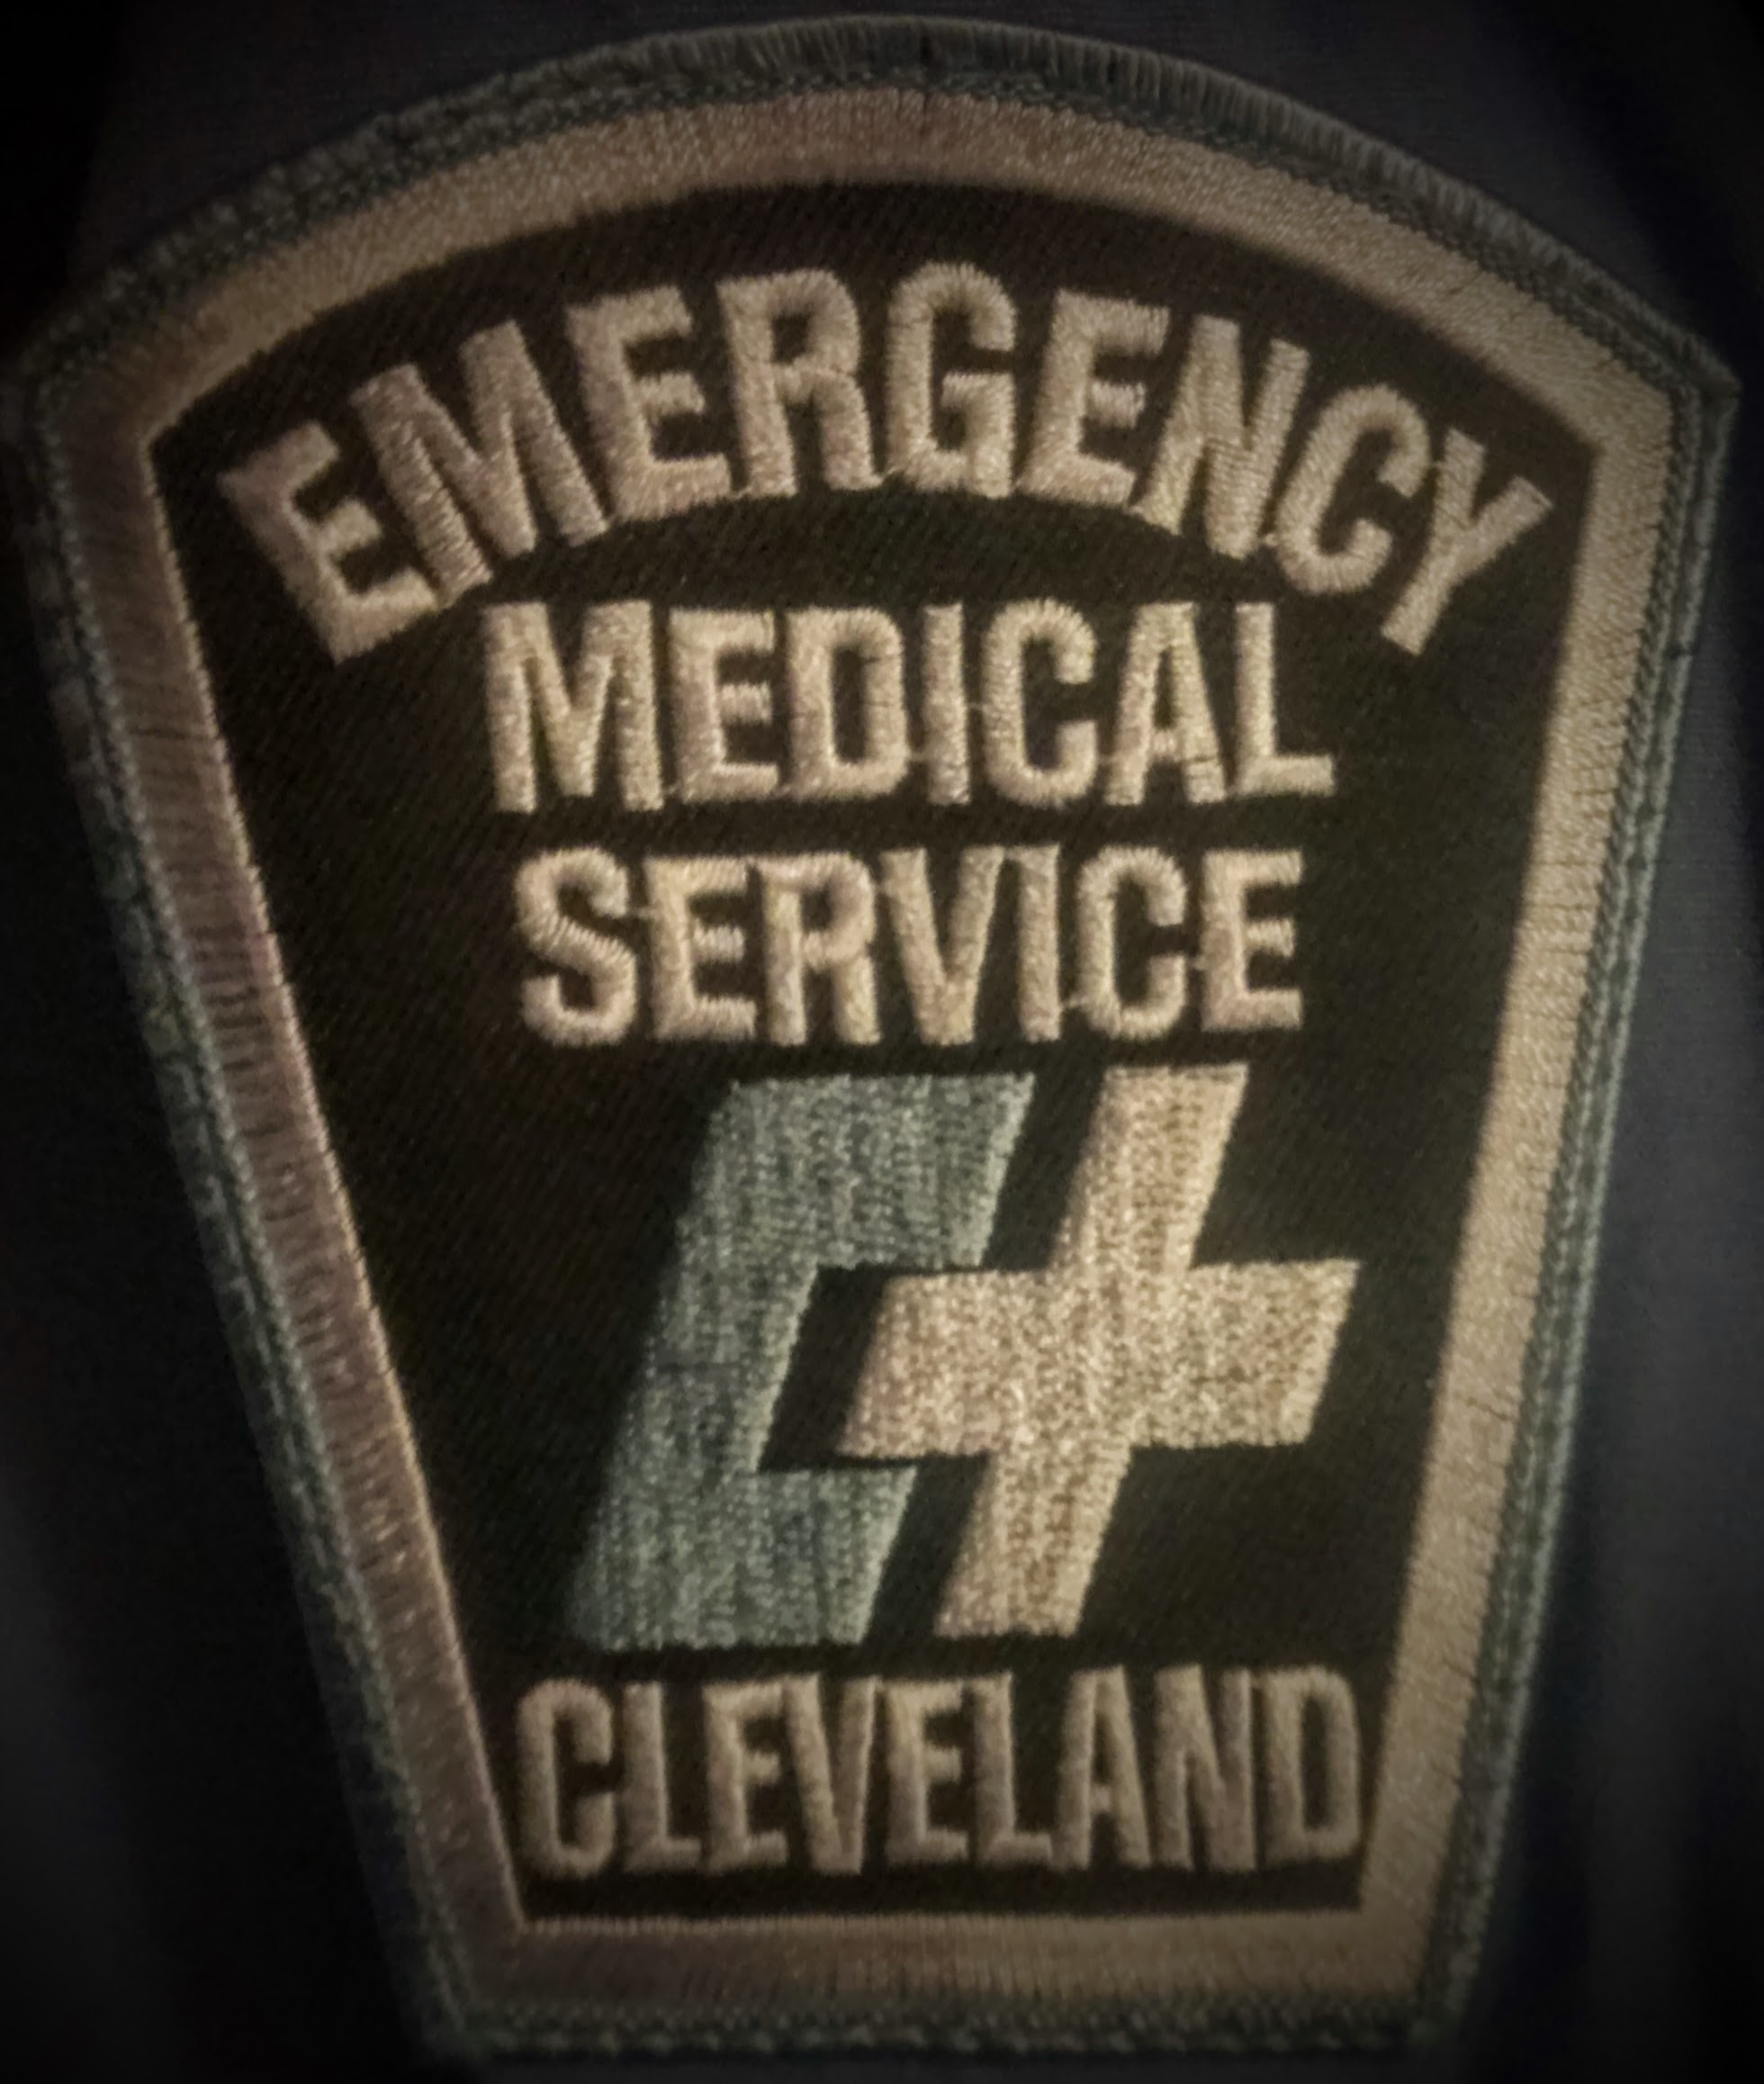 - I currently function as a paramedic for Cleveland EMS with over 10 years experience as a paramedic I have built myself a respectful and trust worthy reputation. I have 3 beautiful children and work hard to raise them with a honest and hard work ethic.